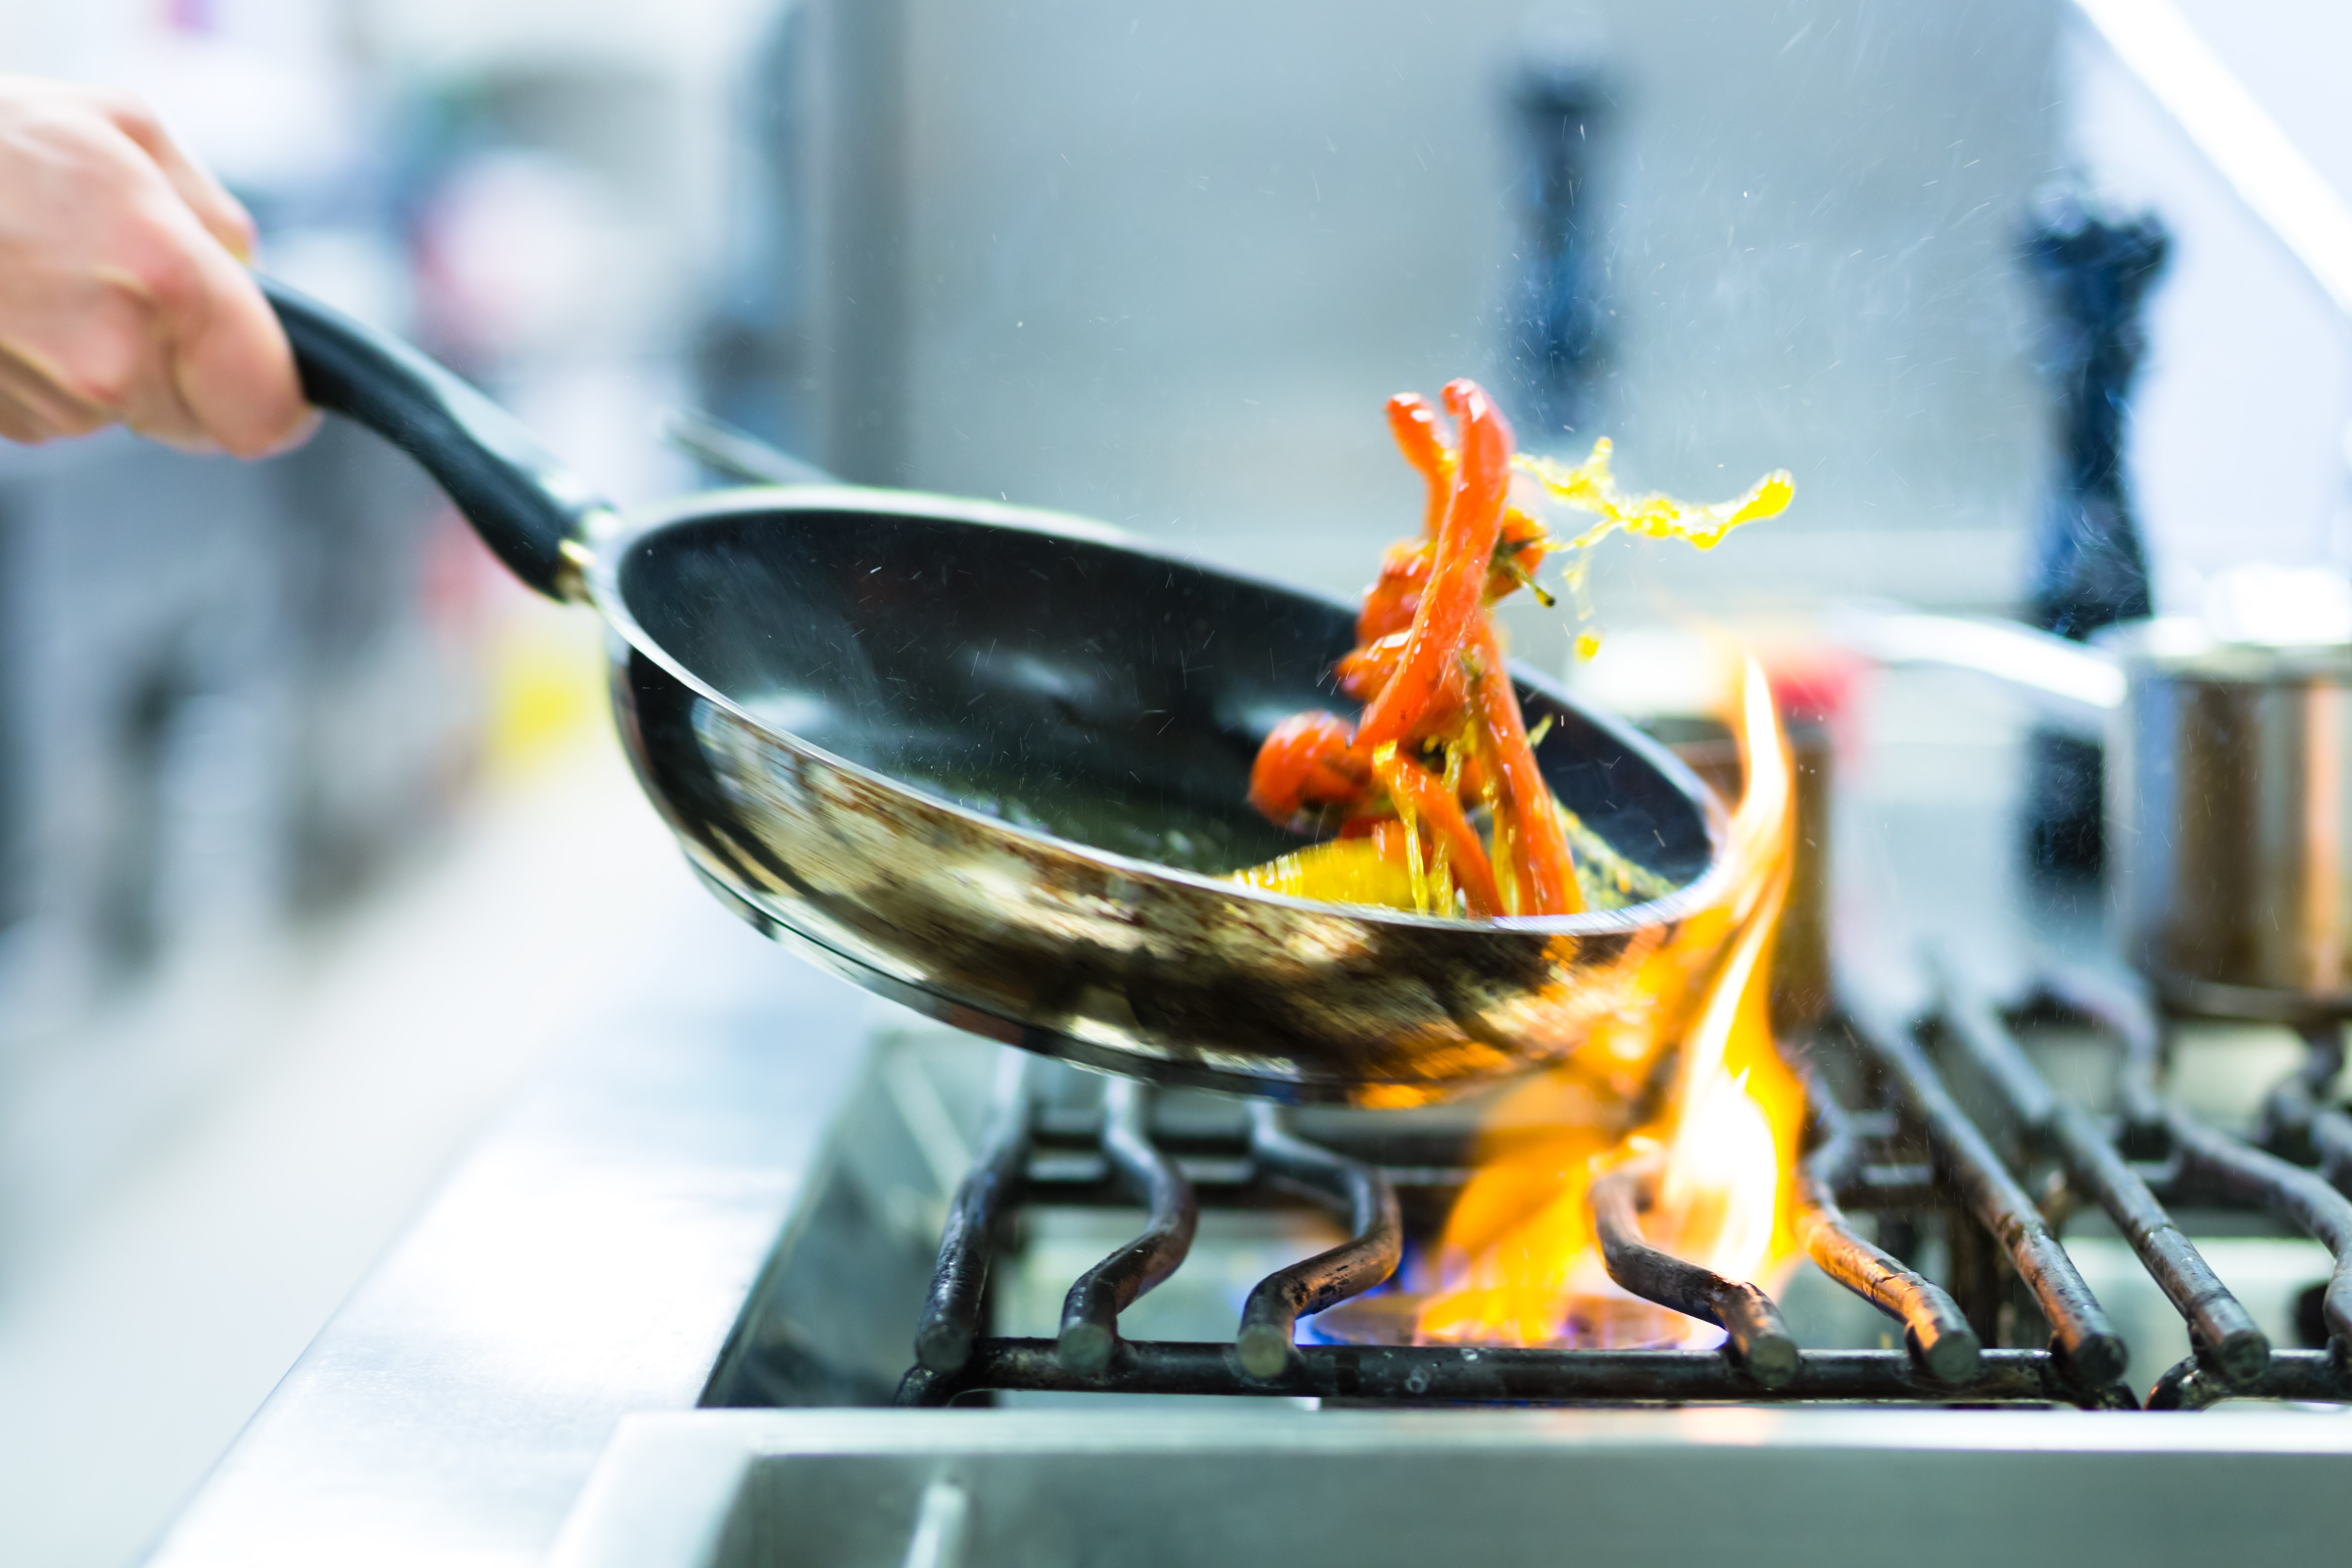 Reasons to Cook with Natural Gas | Trussville Gas and Water